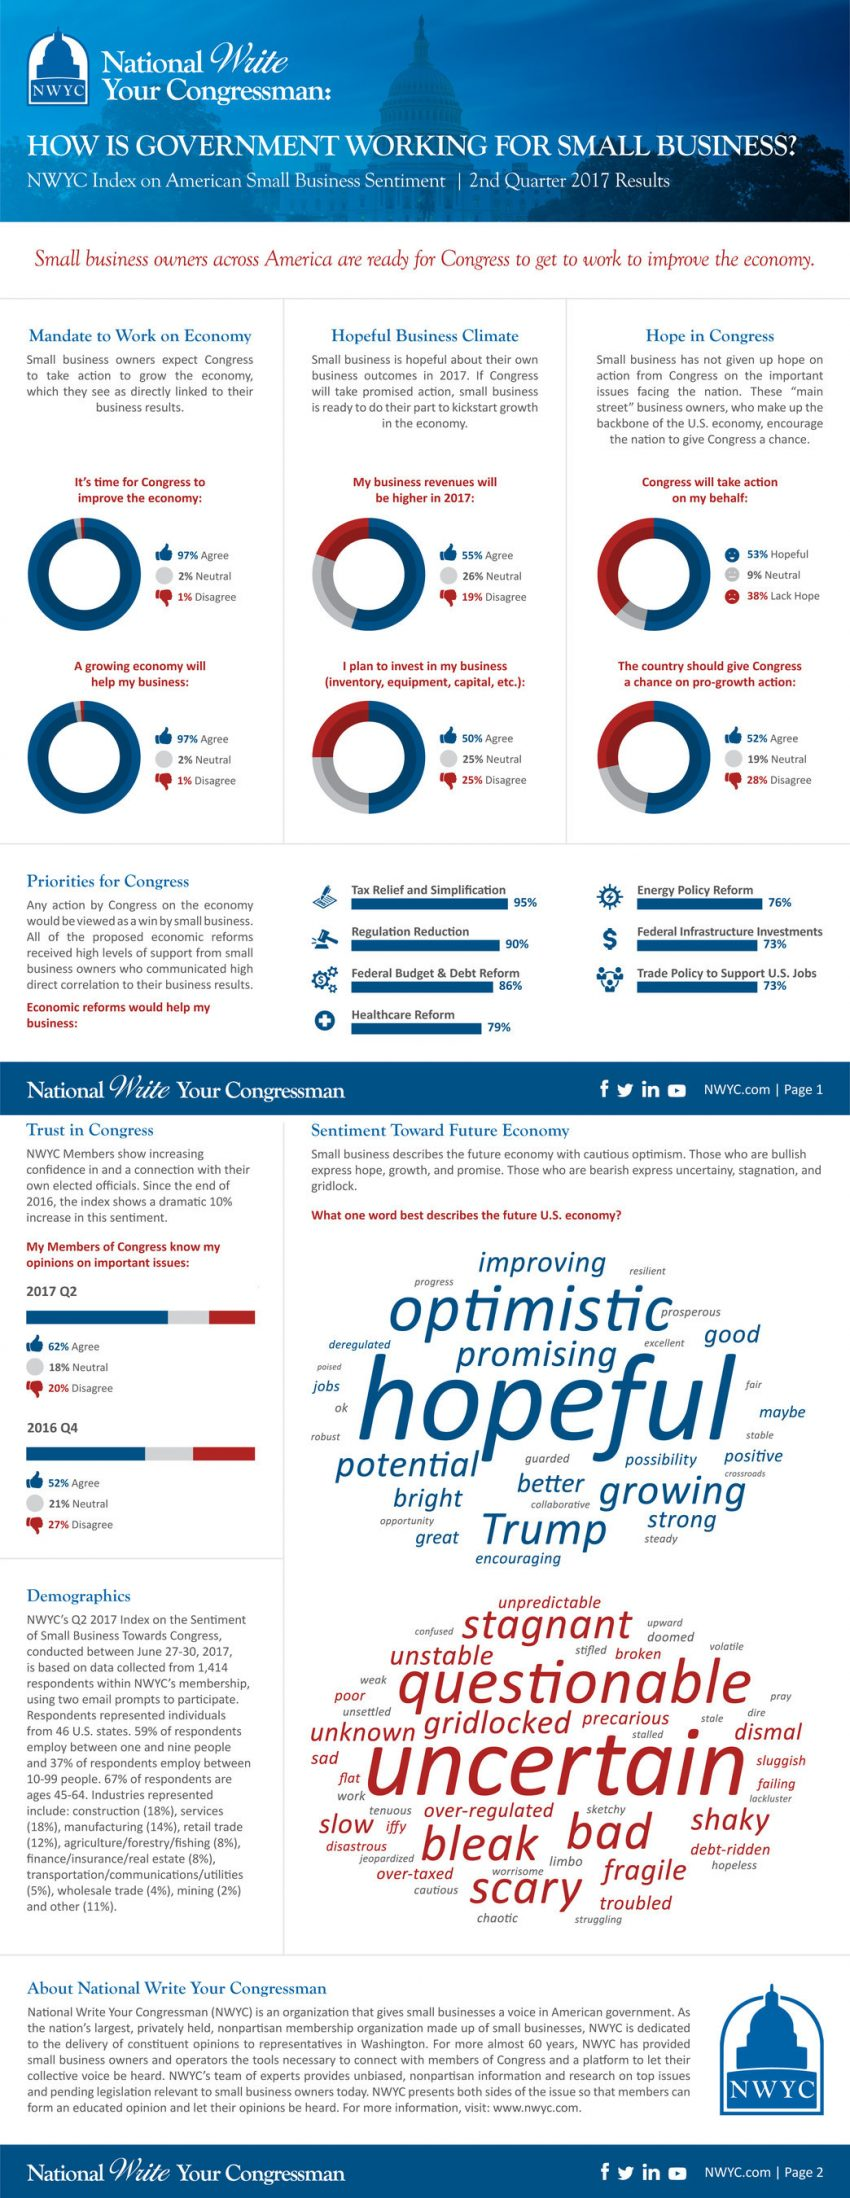 NWYC Q2 2017 Small Business Sentiment Index: 95 Percent of Small Businesses Are Focused on Tax Relief